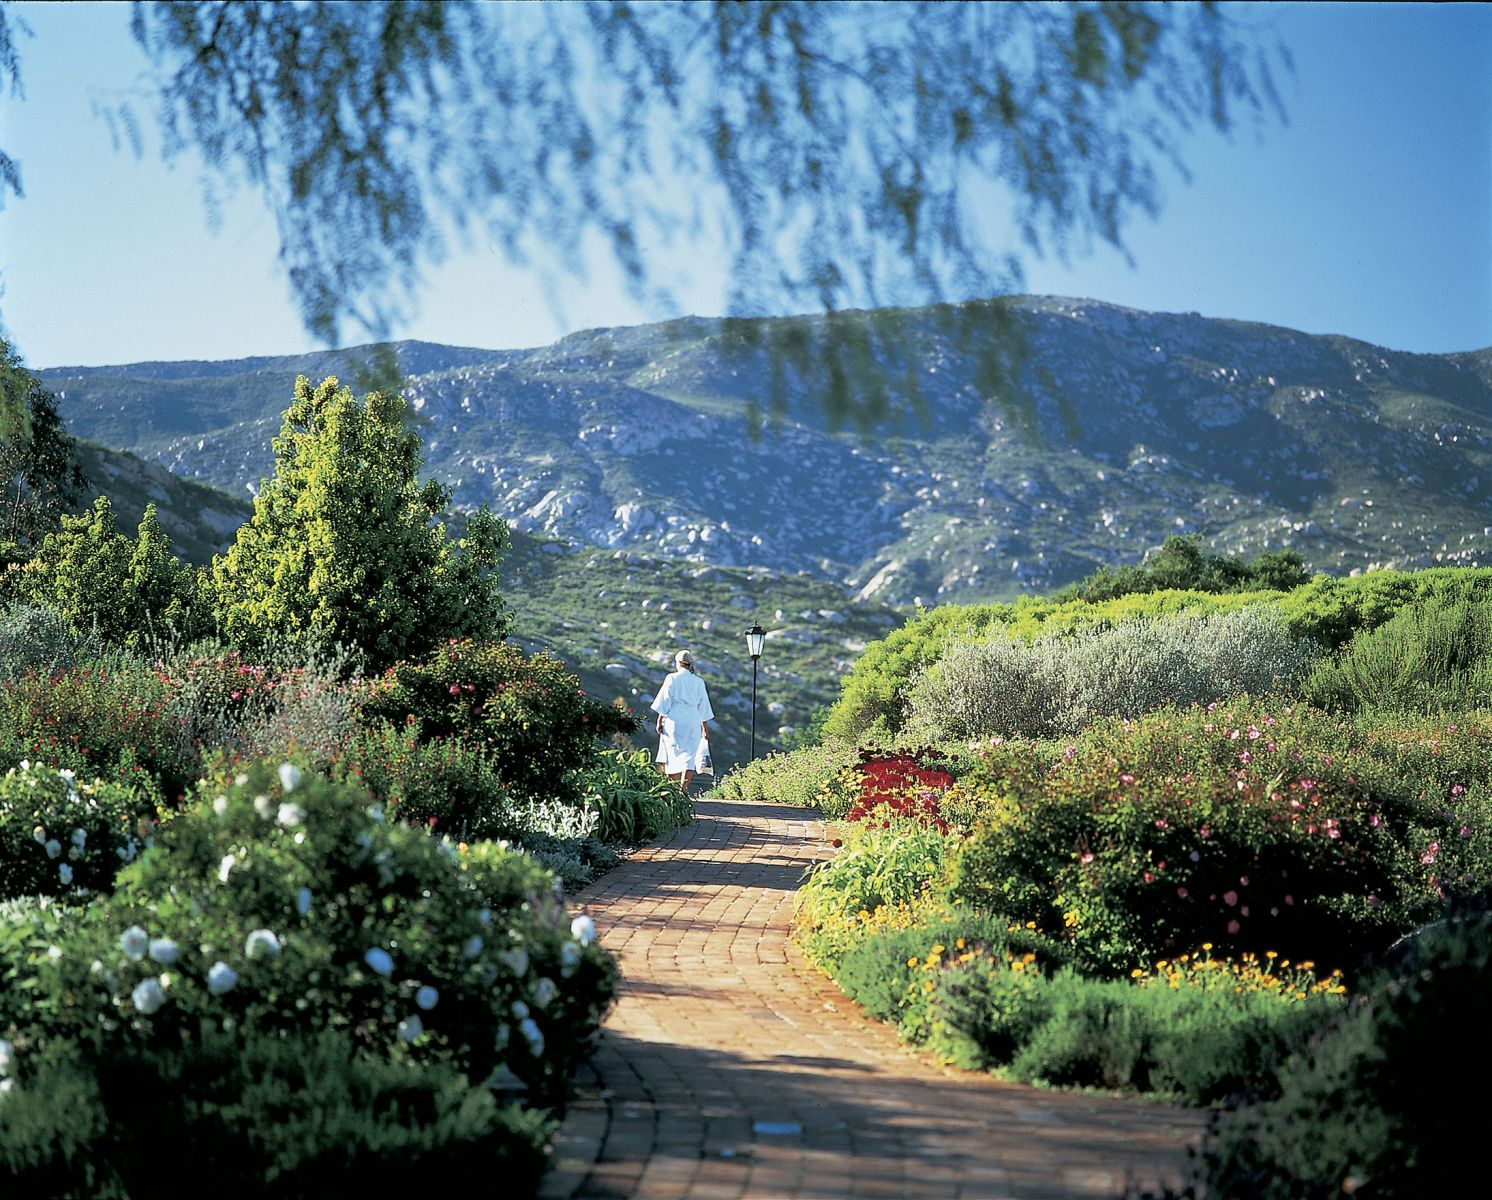 The Grounds at Rancho La Puerta